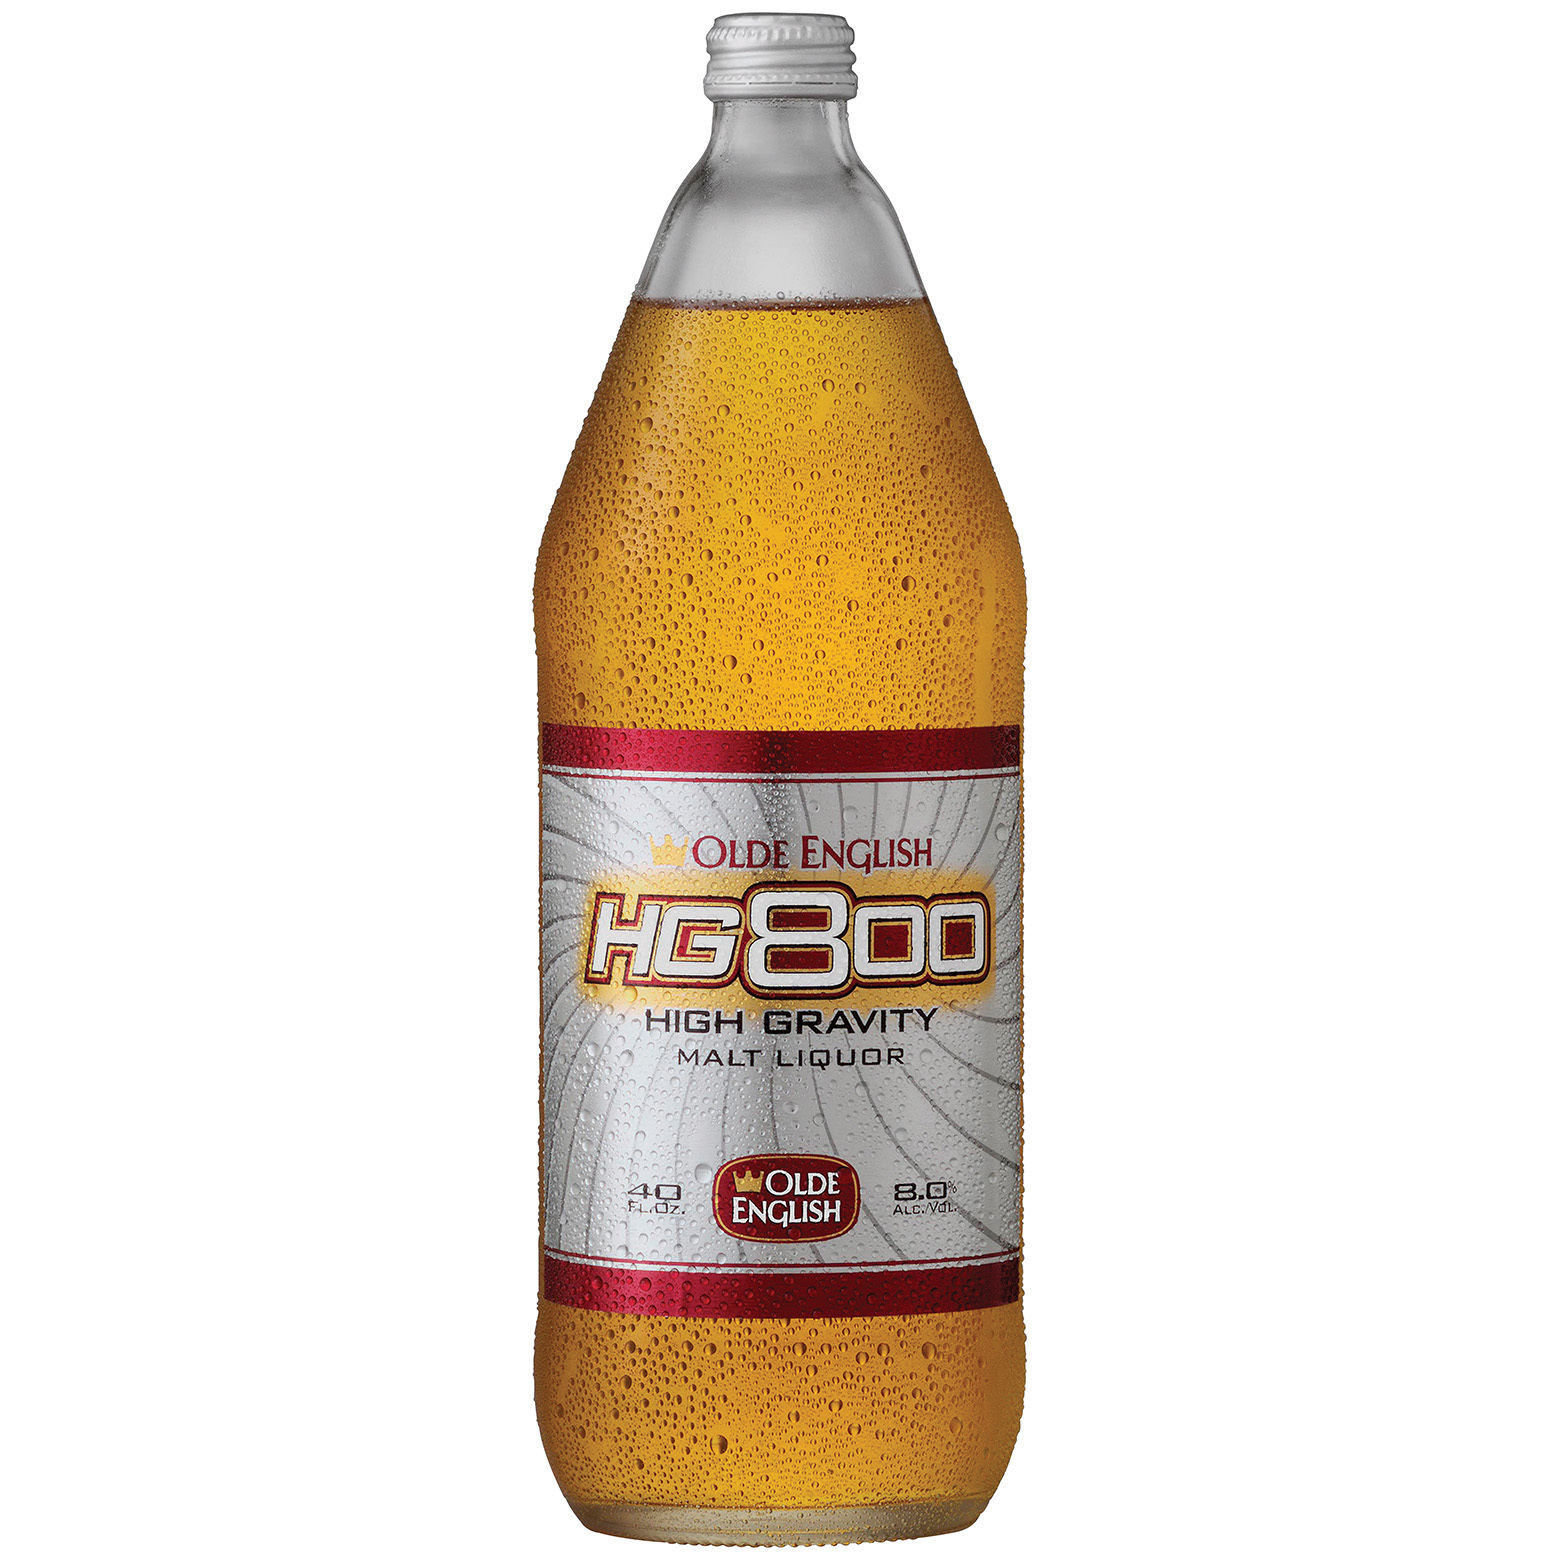 Image result for olde english 800 high gravity